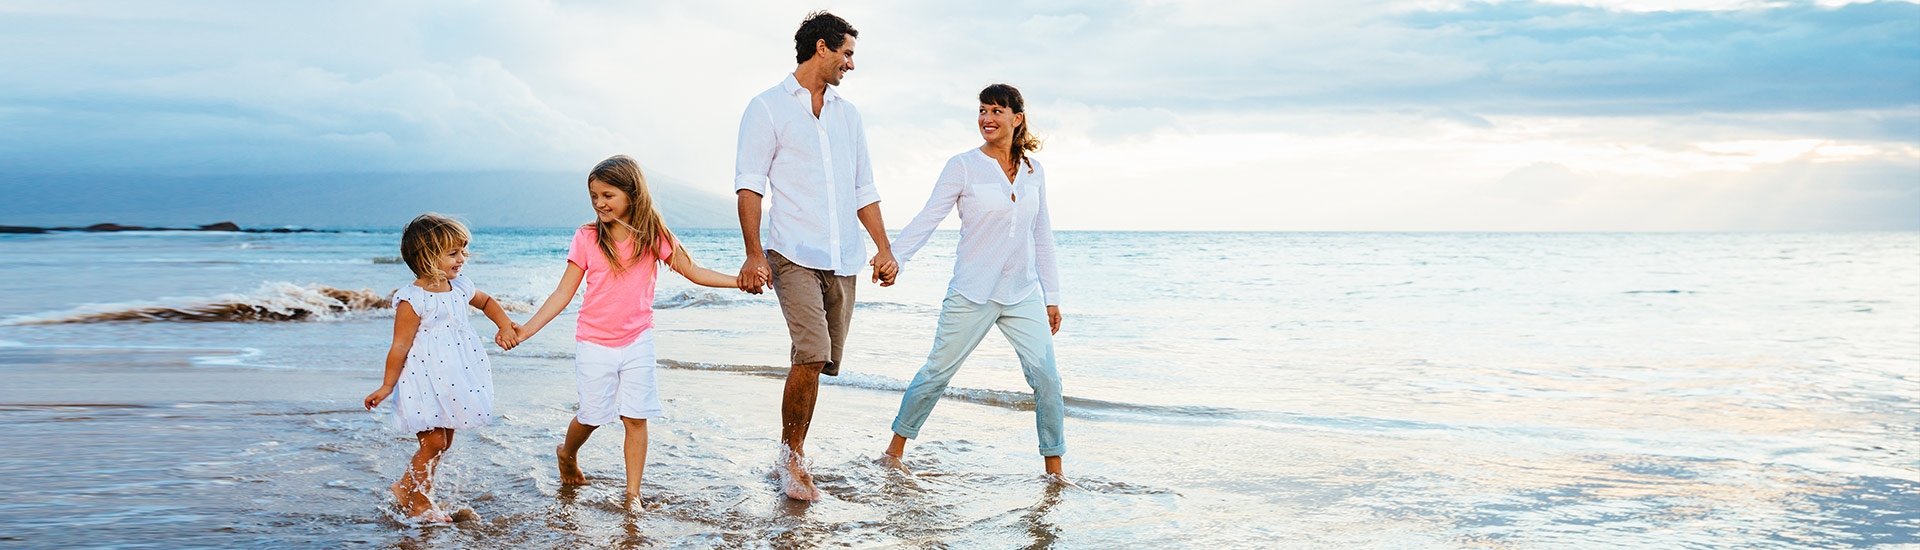 Insurance in Tampa, Land O Lakes FL, Clearwater